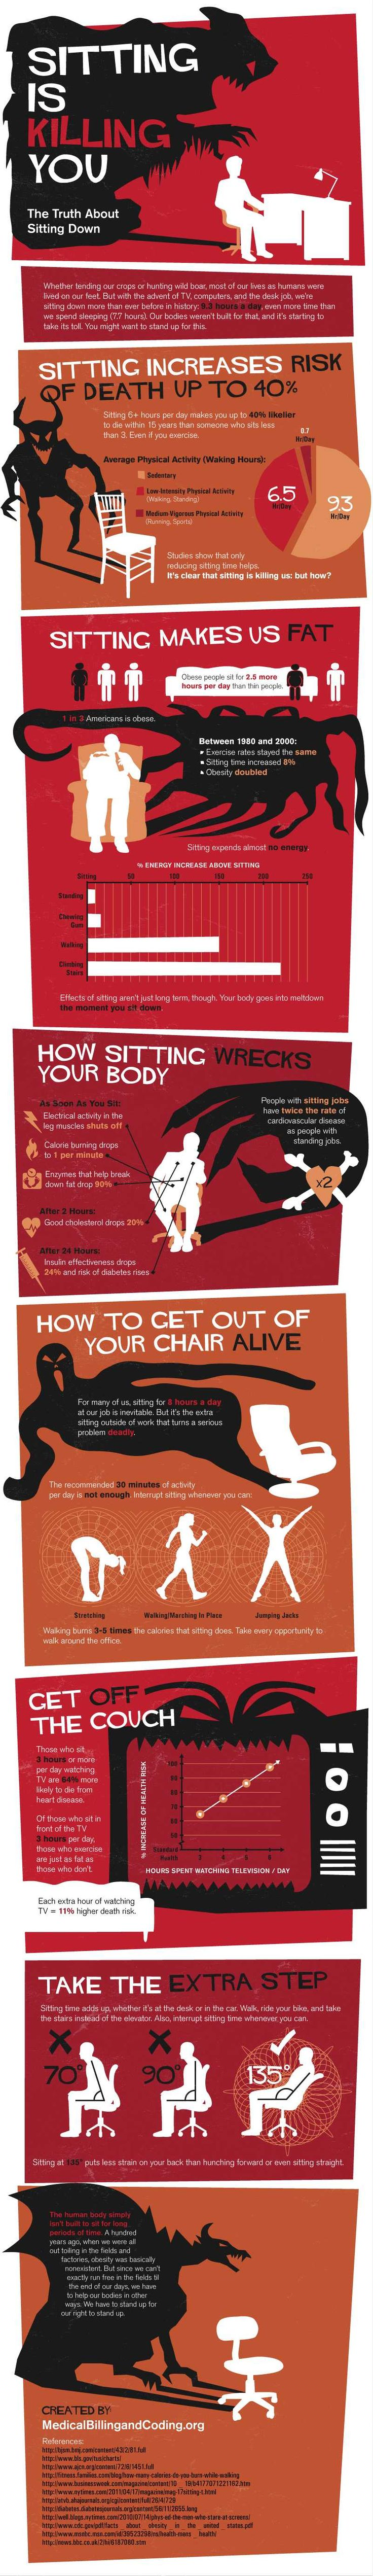 Sitting Is Killing You [Infographic] by MedicalBillingand Coding via howtogeek #Infographic #Sitting #Health